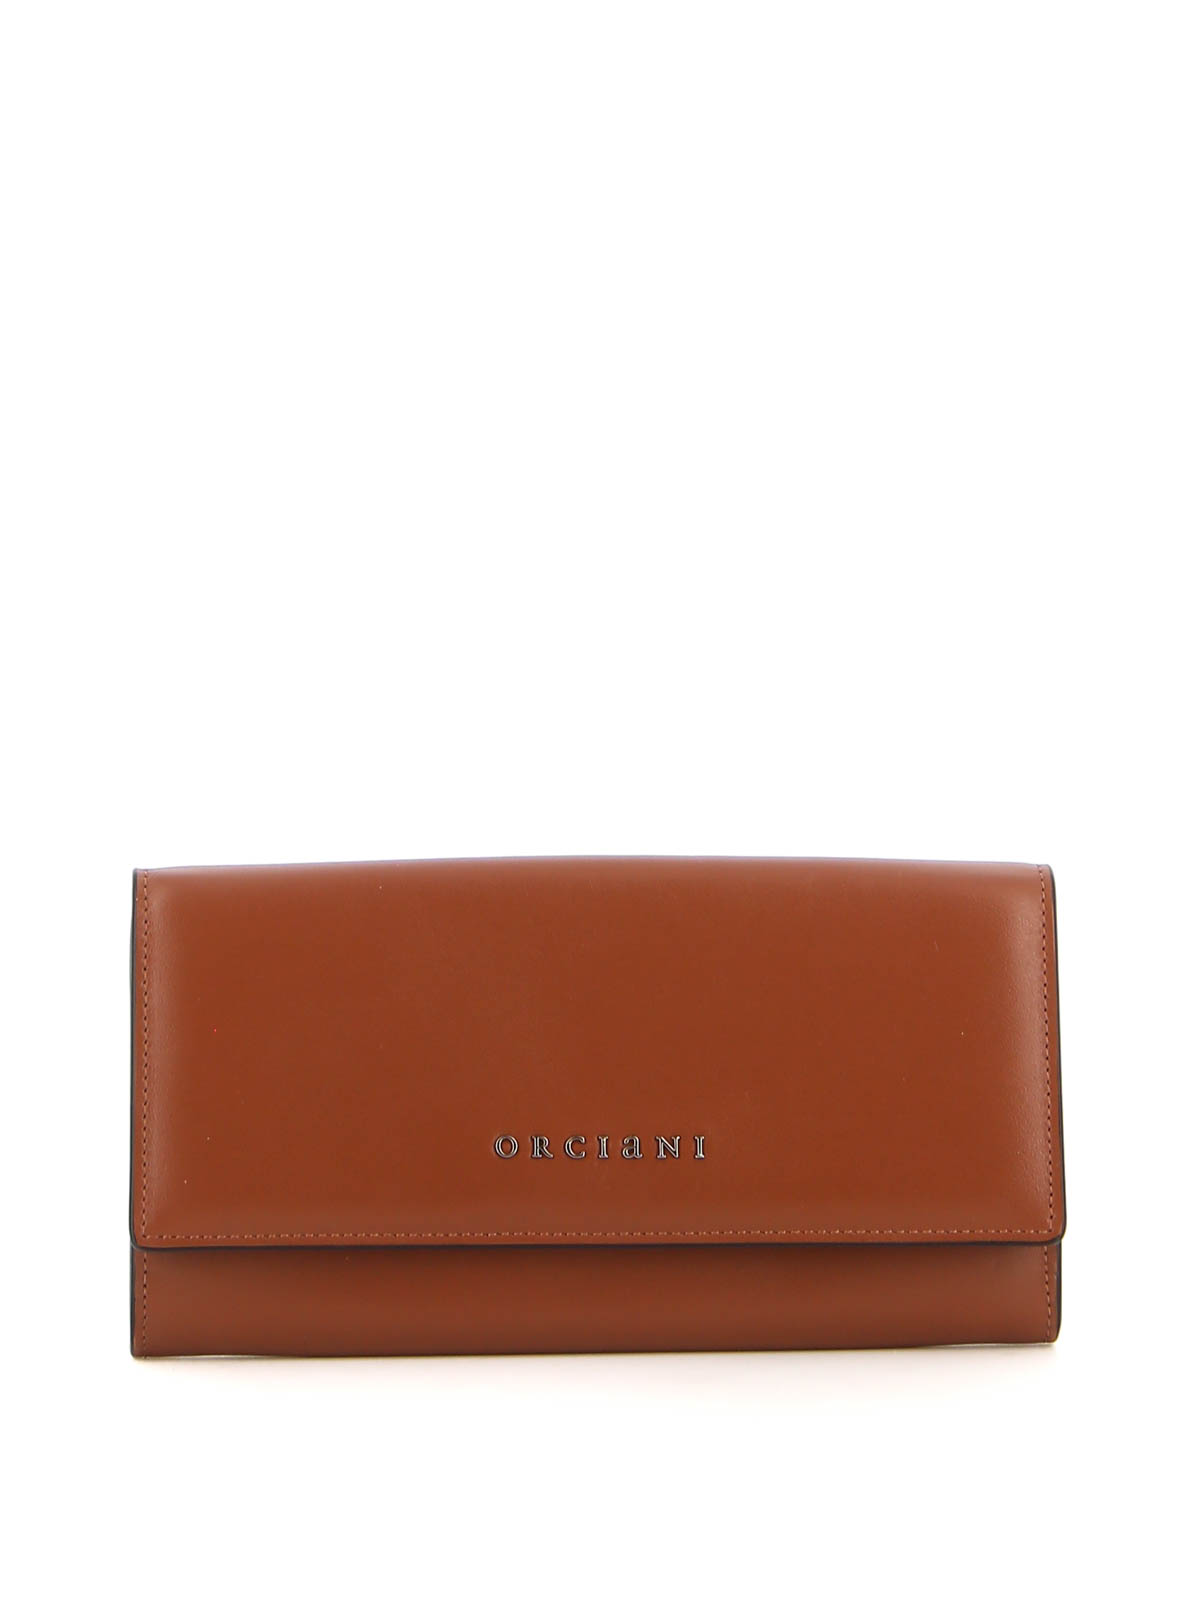 Orciani Wallets SOFT LEATHER WALLET